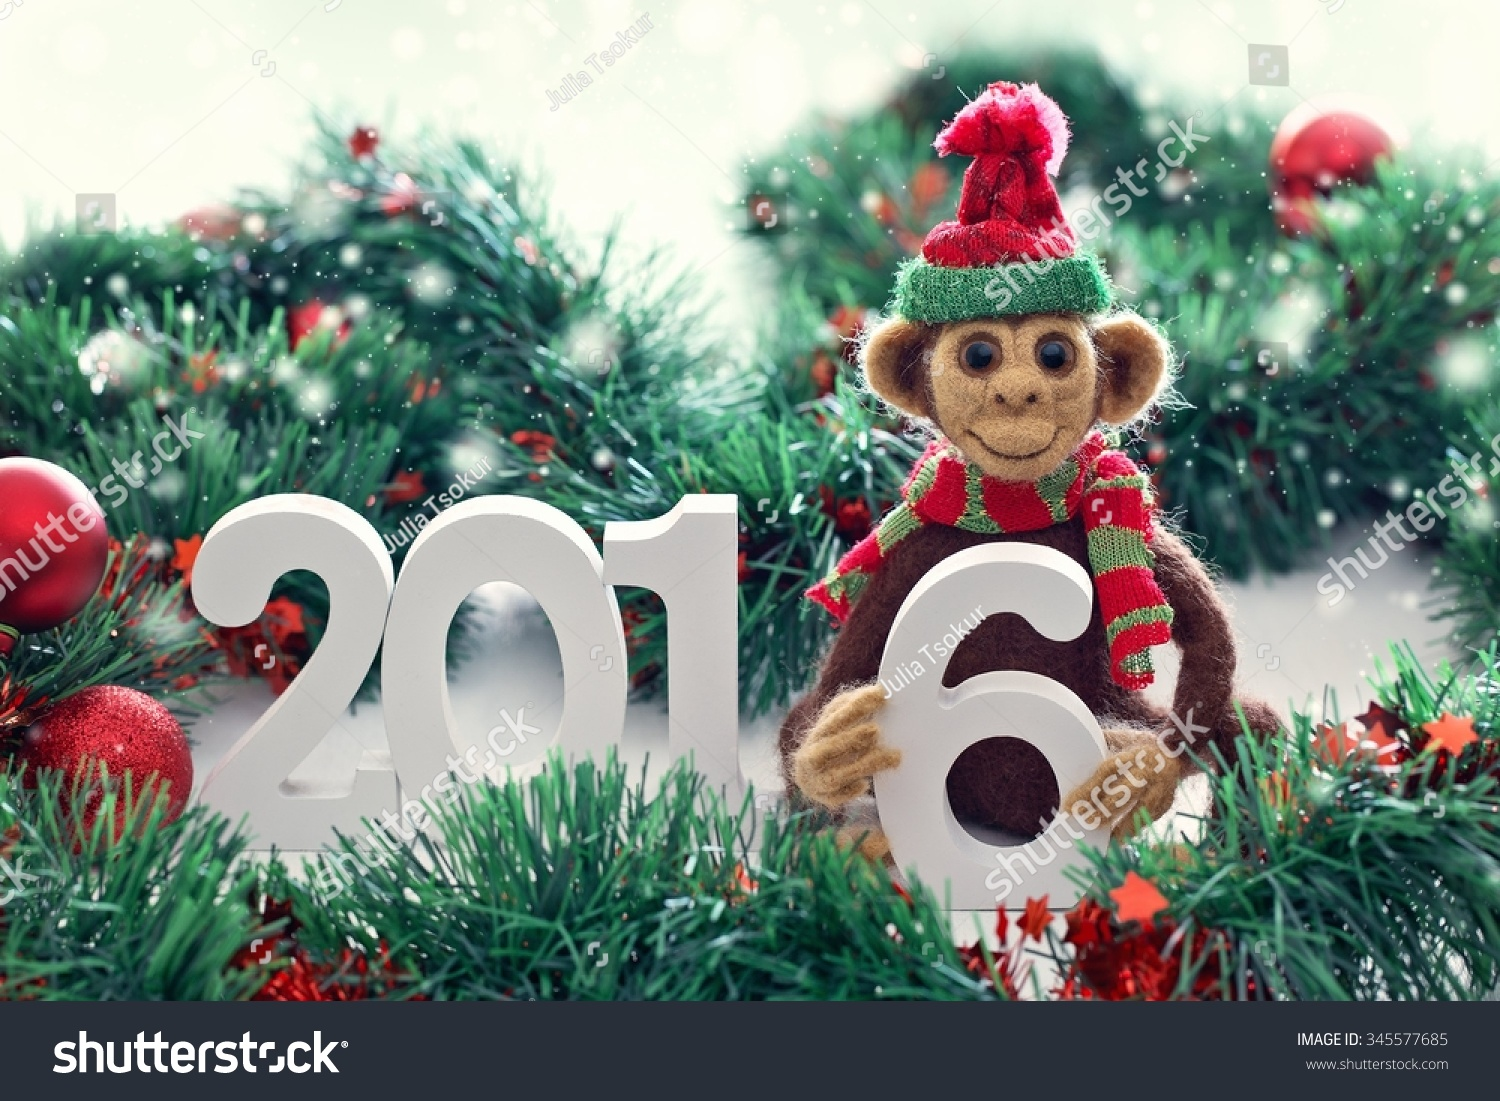 New Year 2016 The Year Of The Monkey Homemade Toy Monkey With A Christmas Decorations Symbol